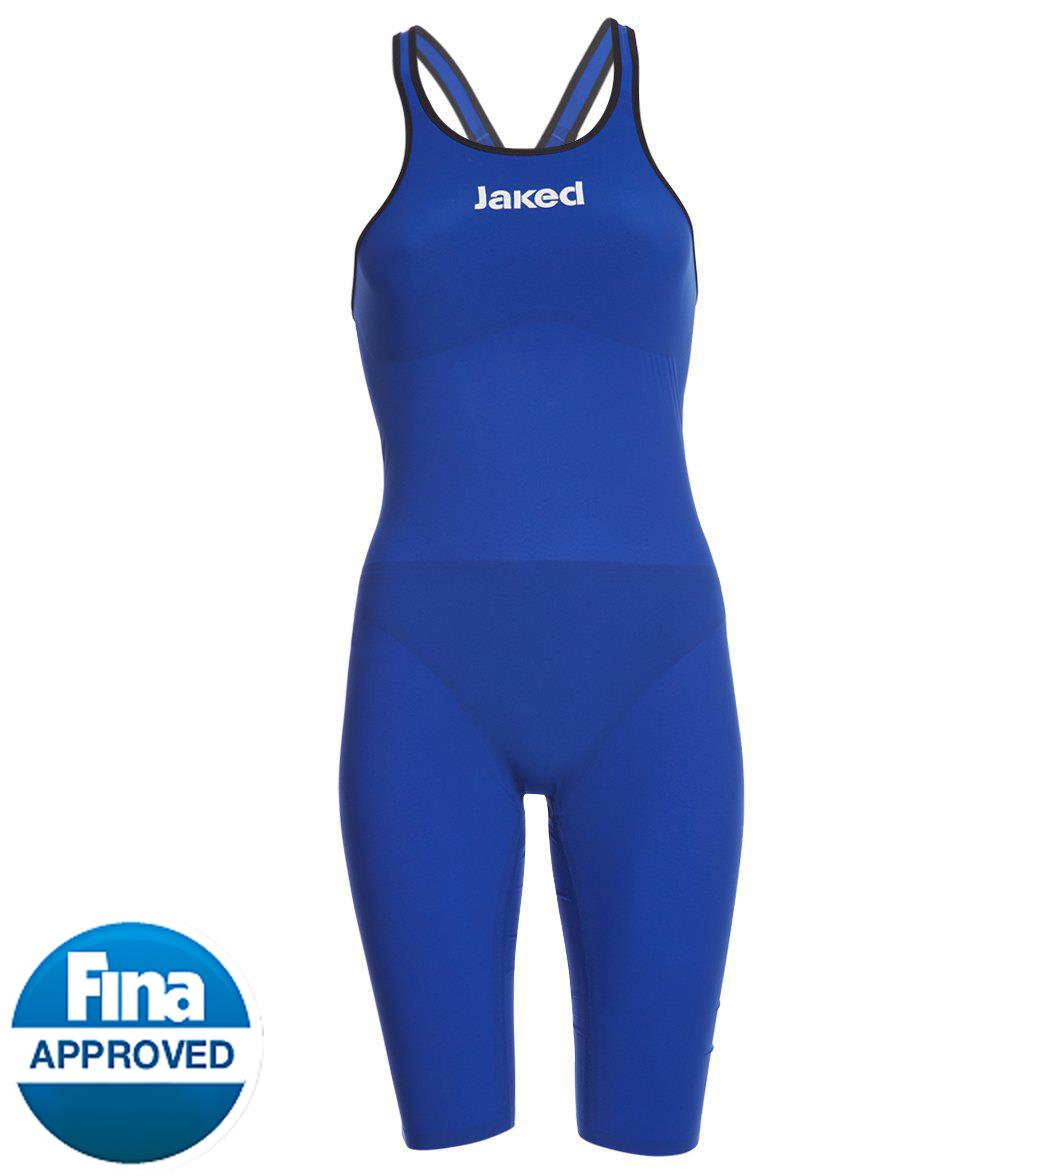 db4f822486 Jaked Women's Jkatana Closed Back Tech Suit Swimsuit at SwimOutlet.com - Free  Shipping